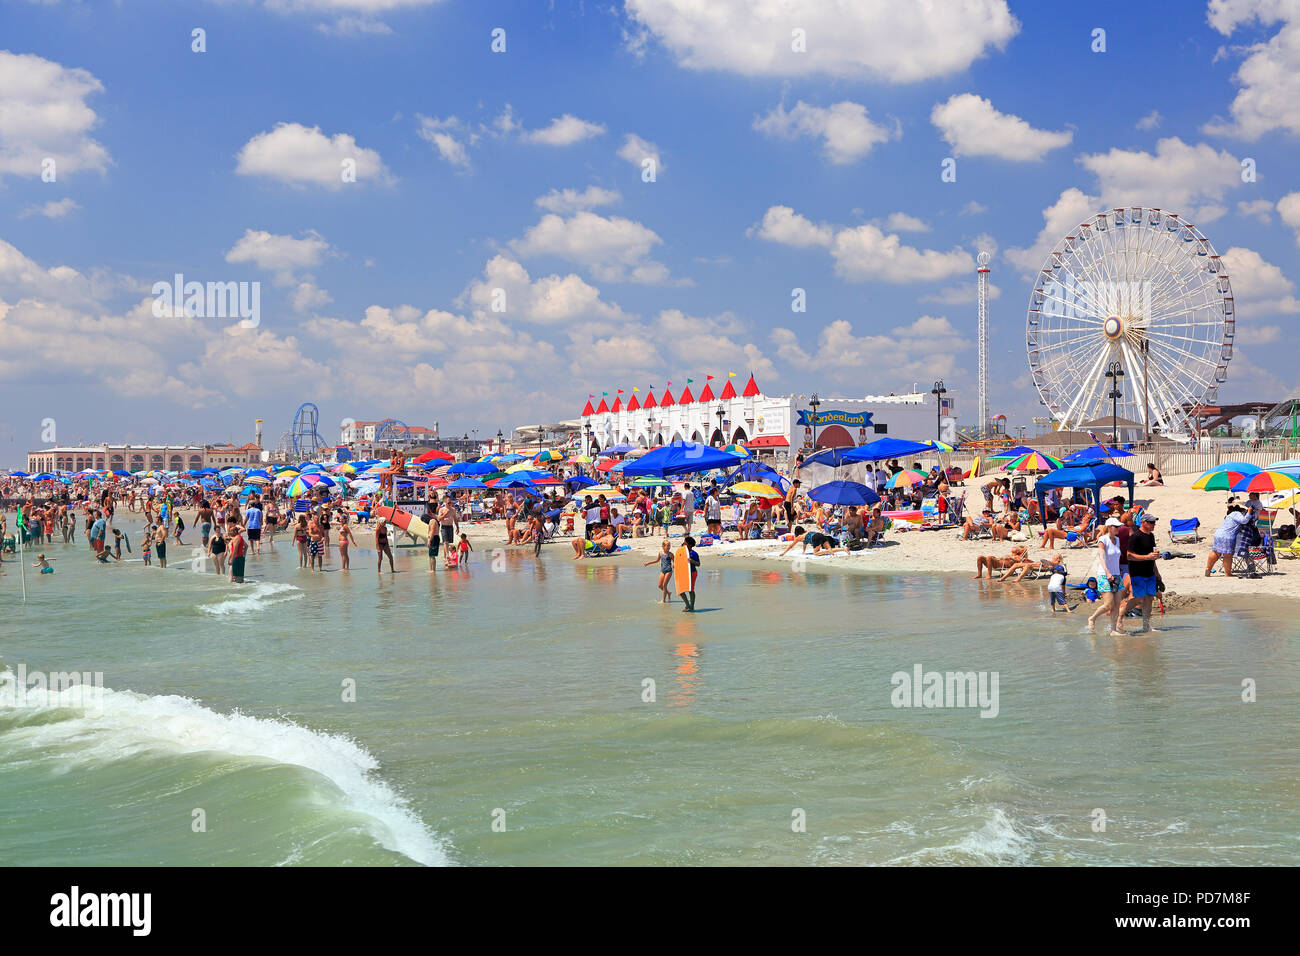 Ocean City Nj Stock Photos & Ocean City Nj Stock Images - Alamy